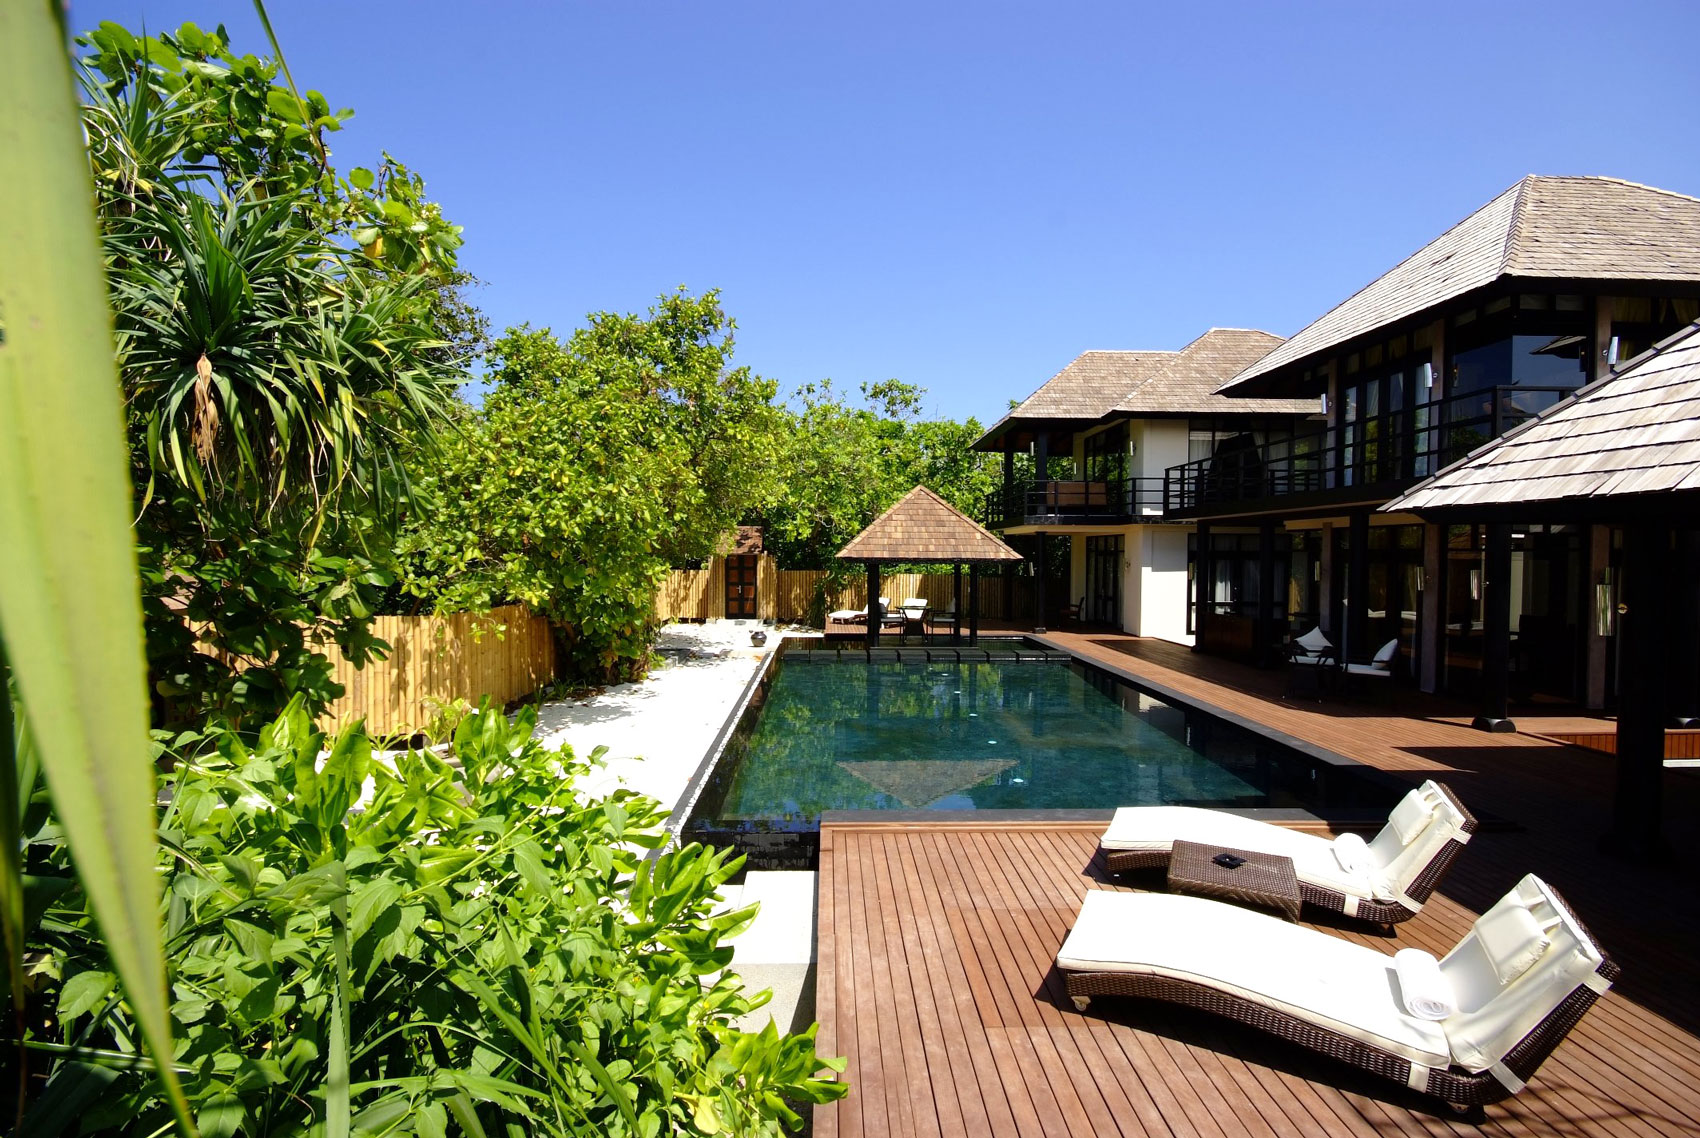 Iruveli a serene beach house in maldives architecture - Make your house a home ...